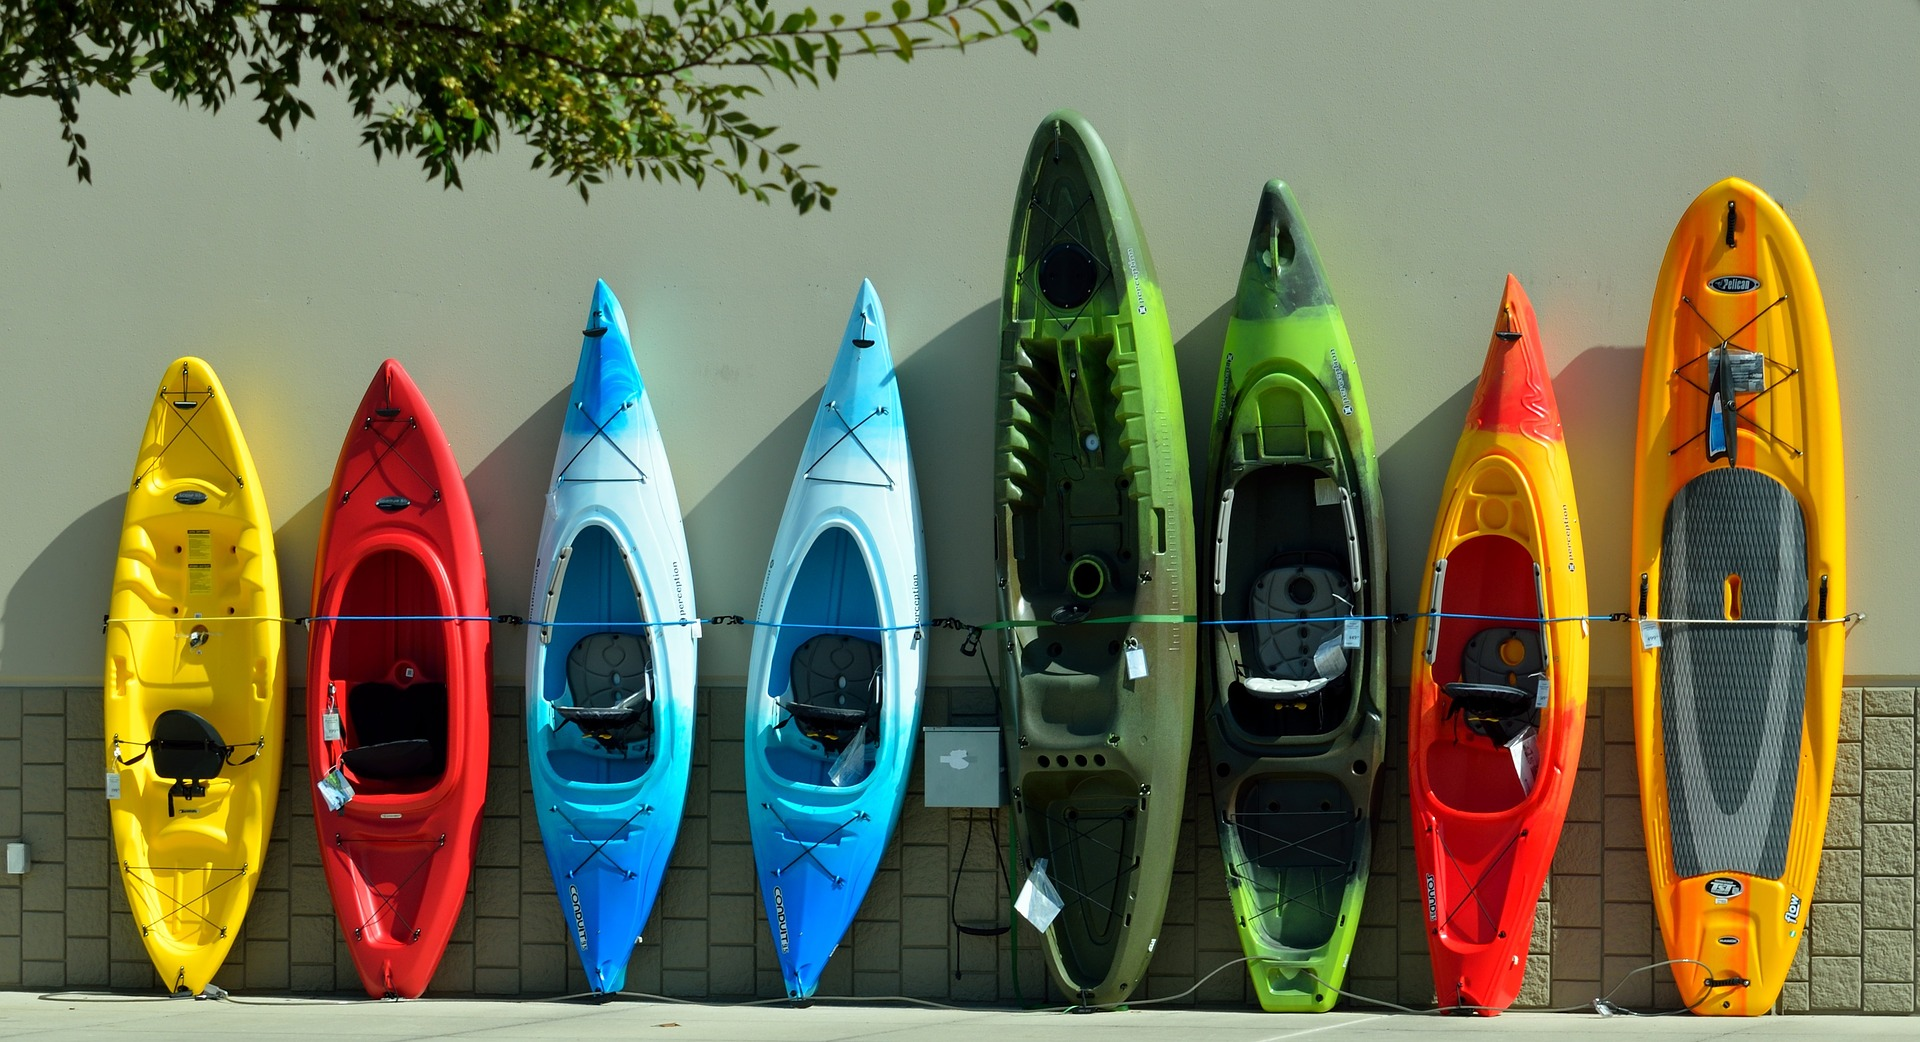 How to Store Kayaks in a Garage